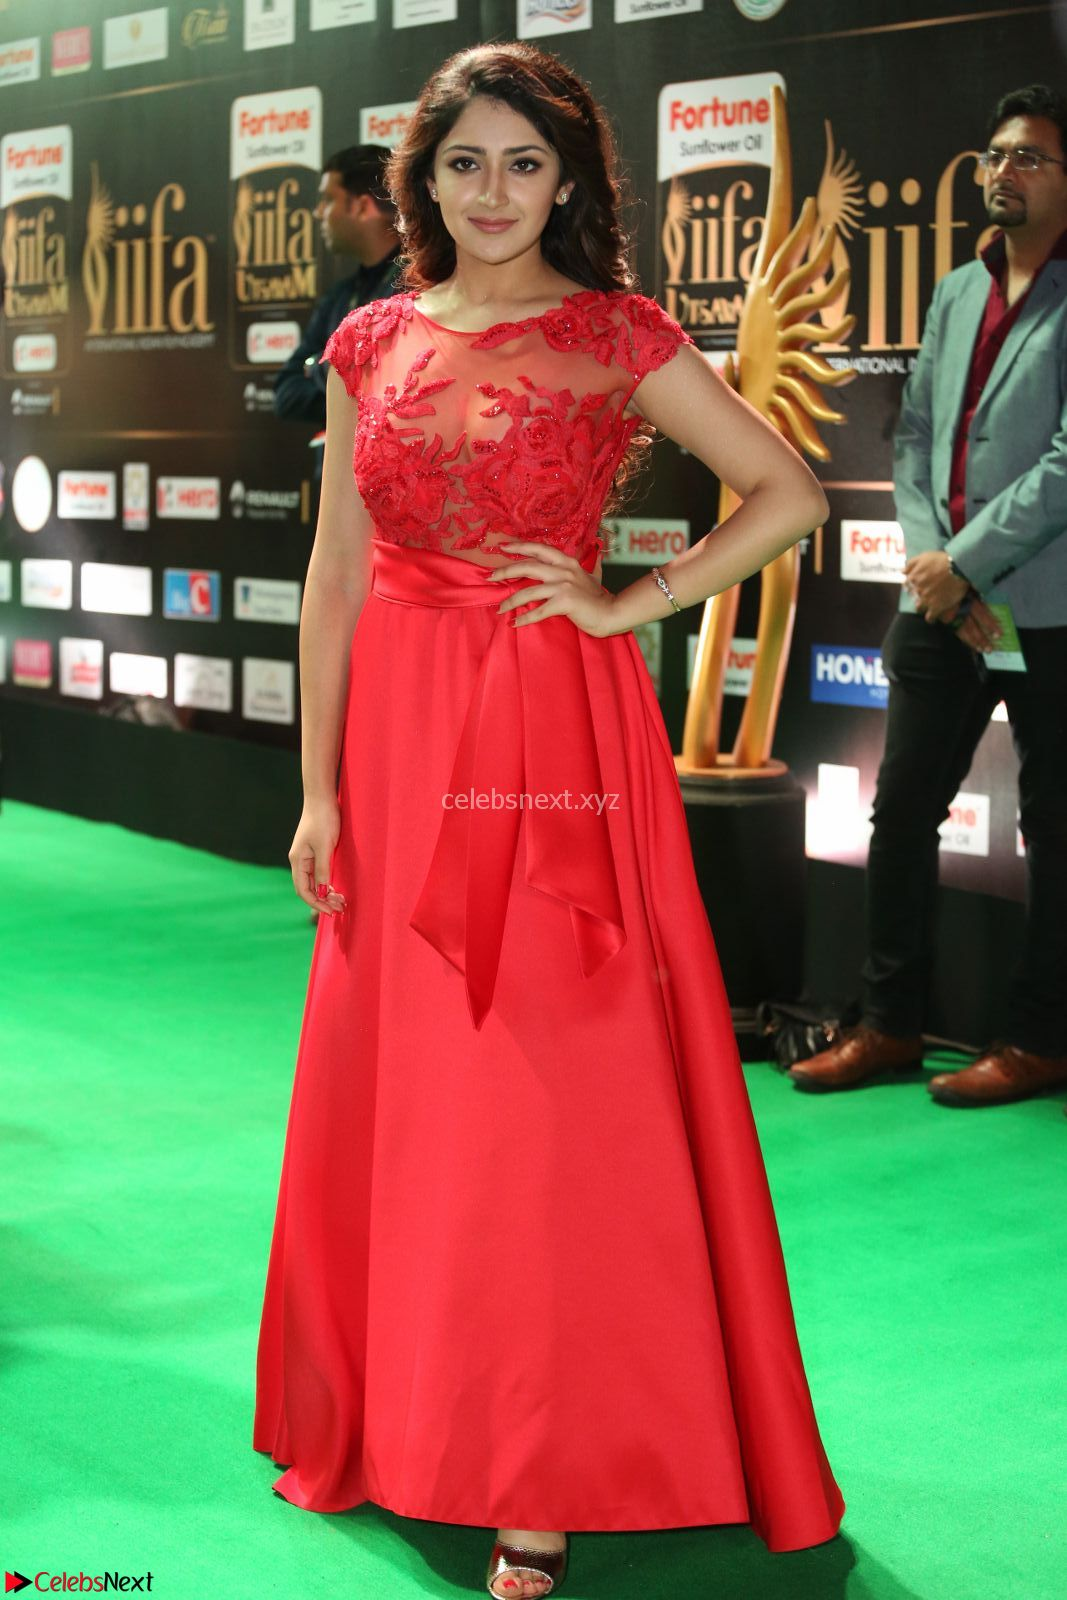 Shilpi Sharma looks Glamorous in Transparent Purple Glittering Gown at IIFA Utsavam Awards 27th March 2017 CelebsNext Exclusive